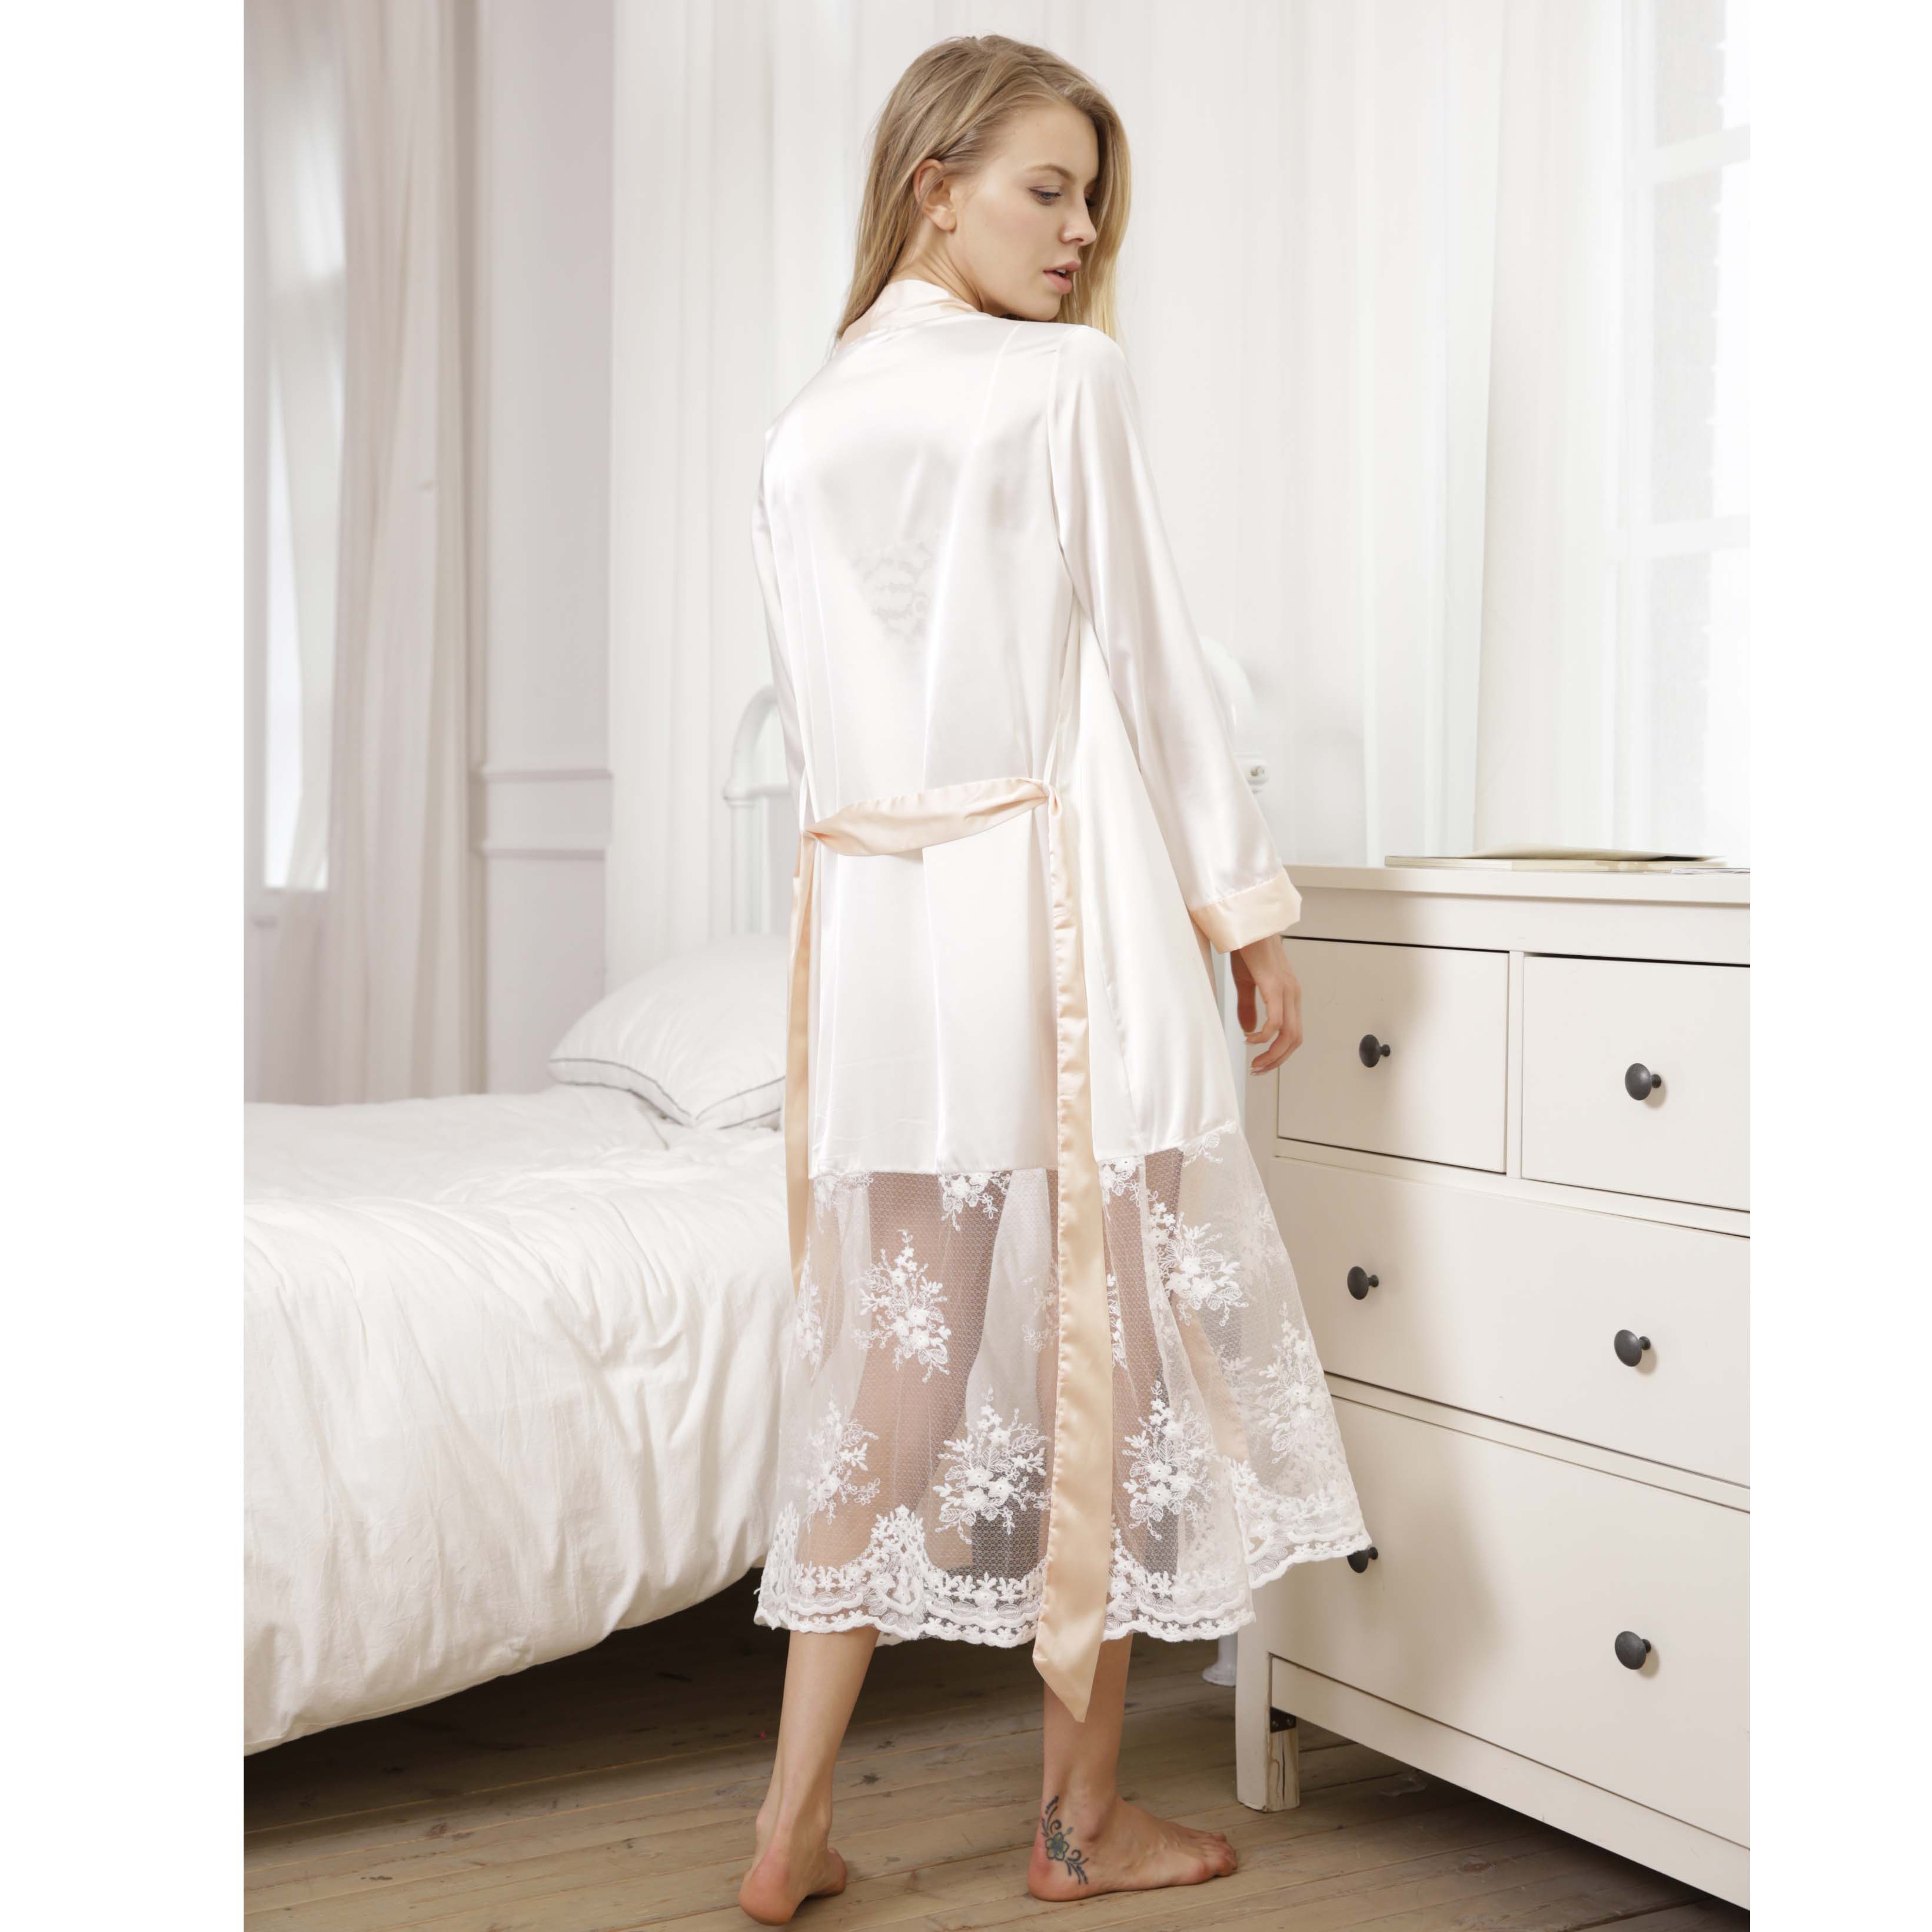 a186ded9dd Wholesale wedding Women super soft Silk Satin Robes Bridal Bridesmaid Bride  Gown Kimono Lace Robe Sleepwear